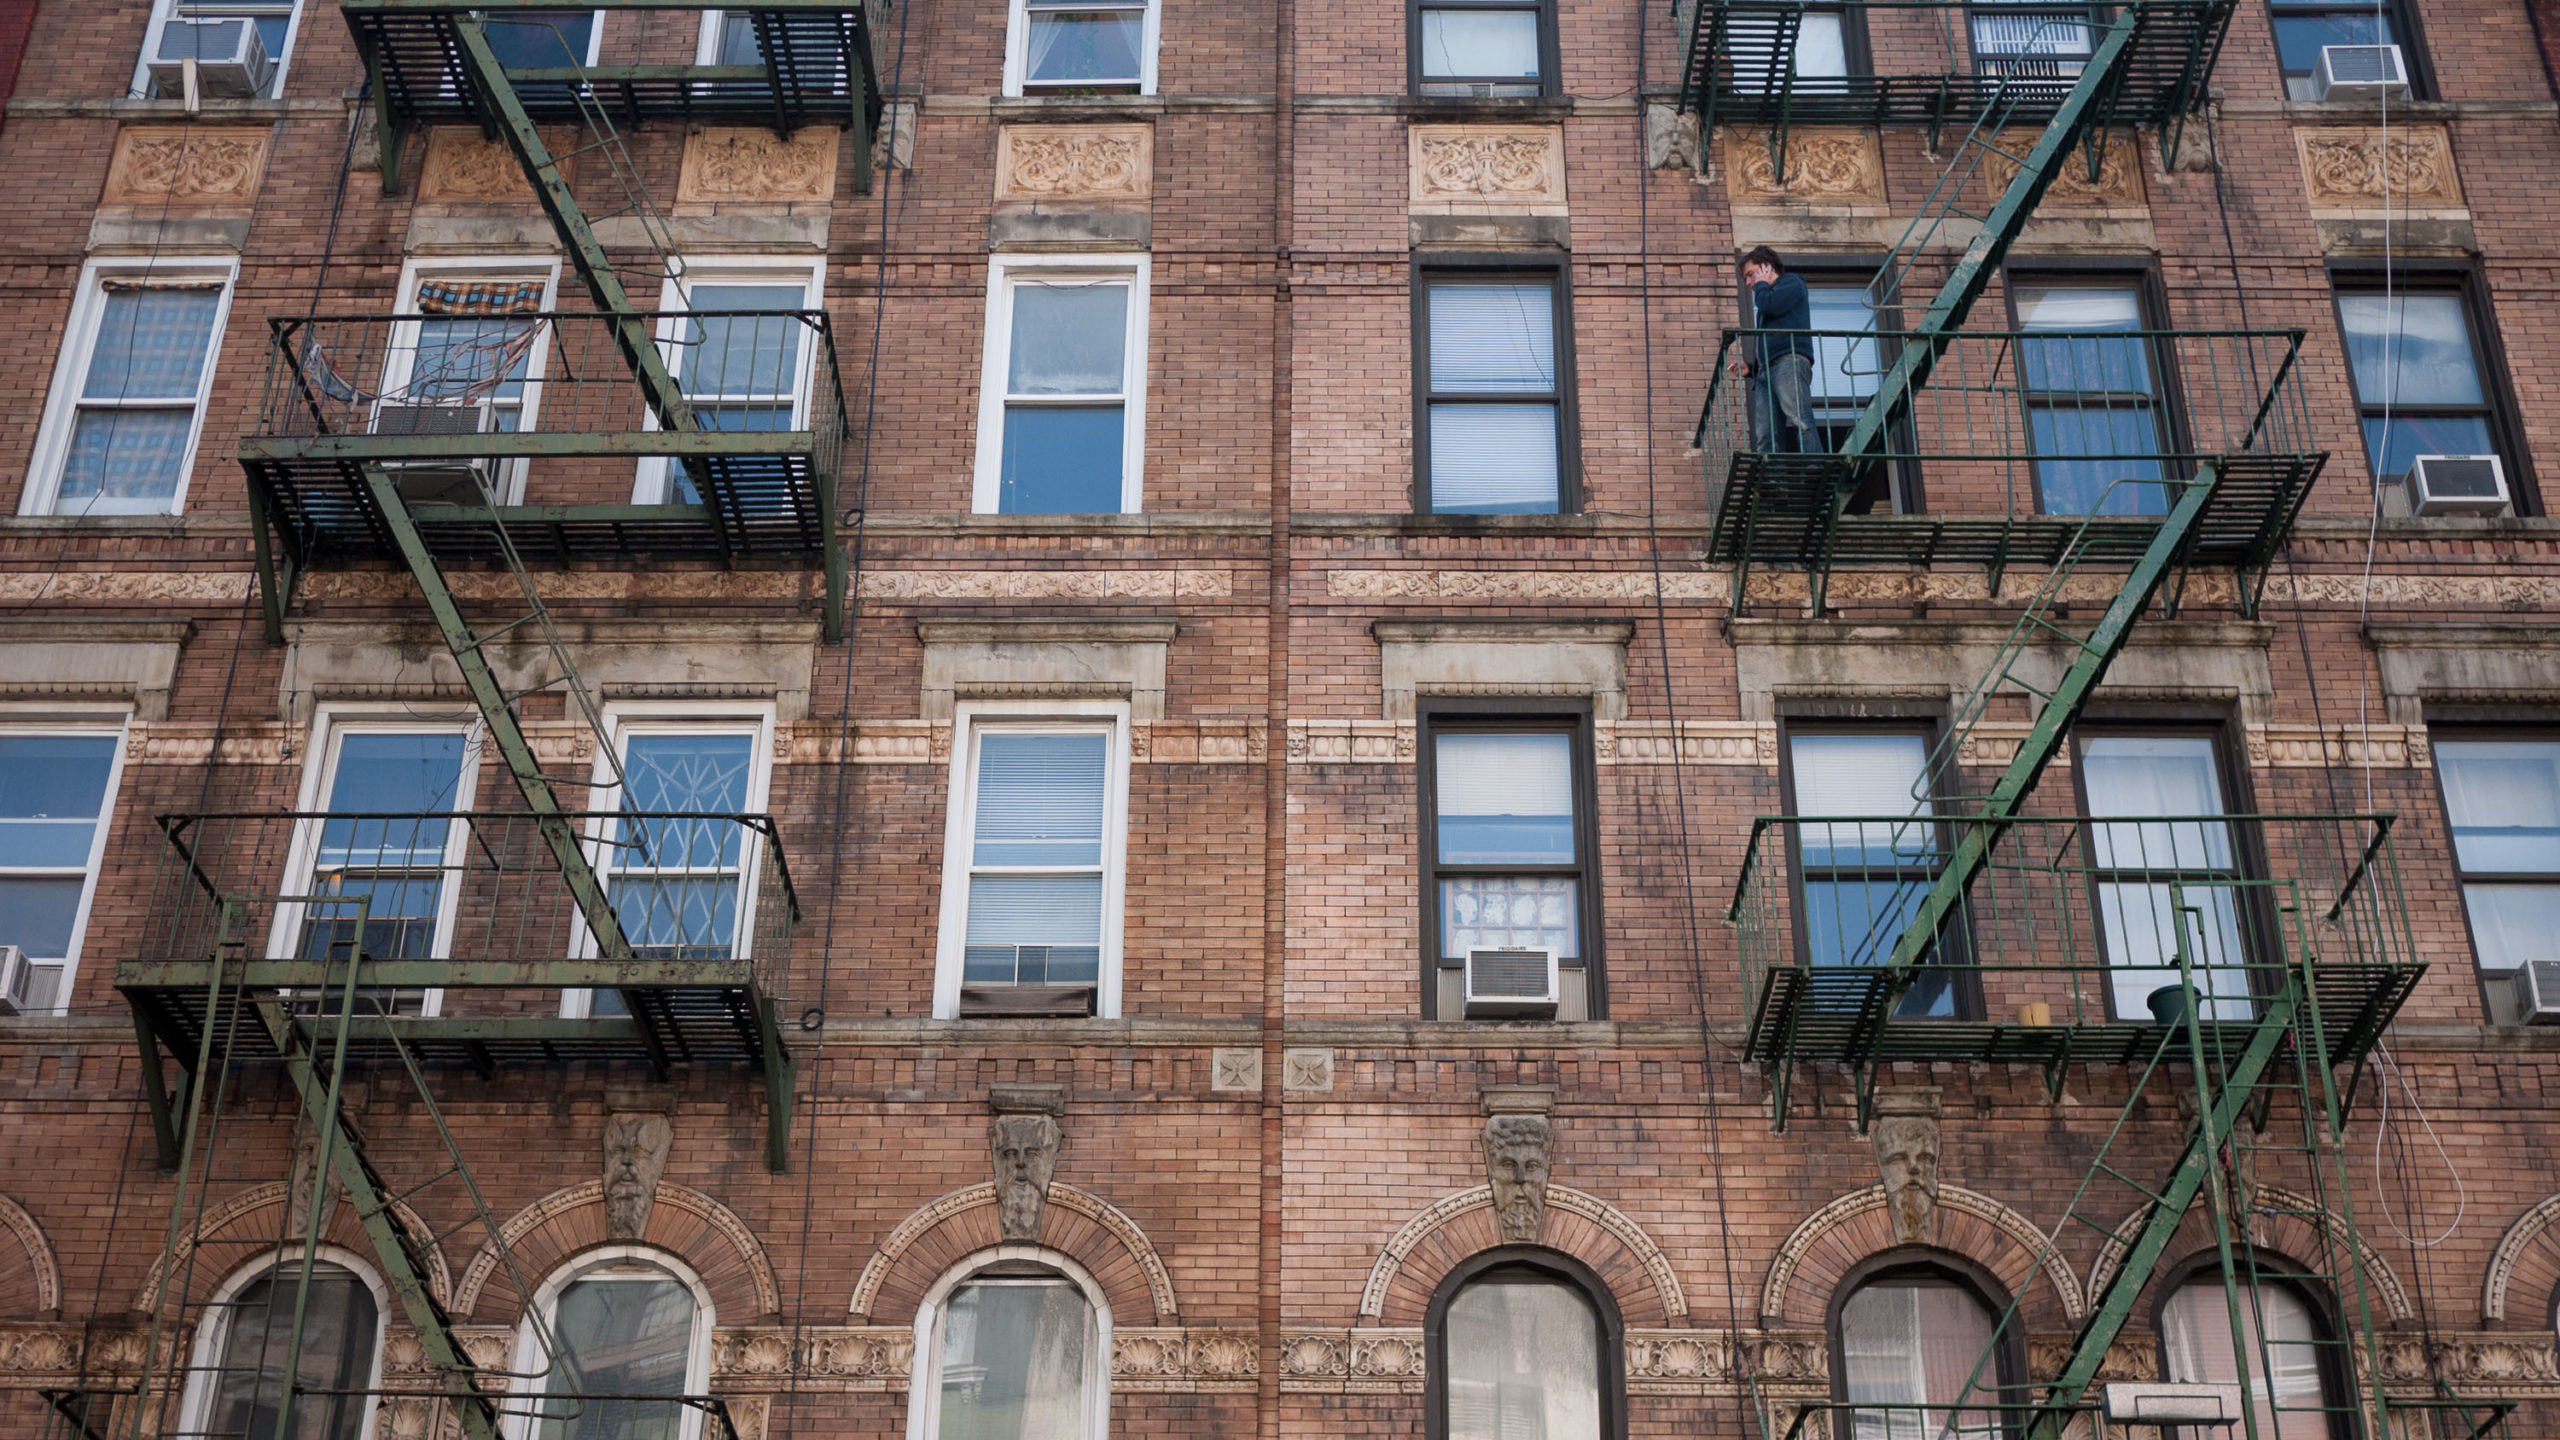 An old brick building with fire escapes in New York City